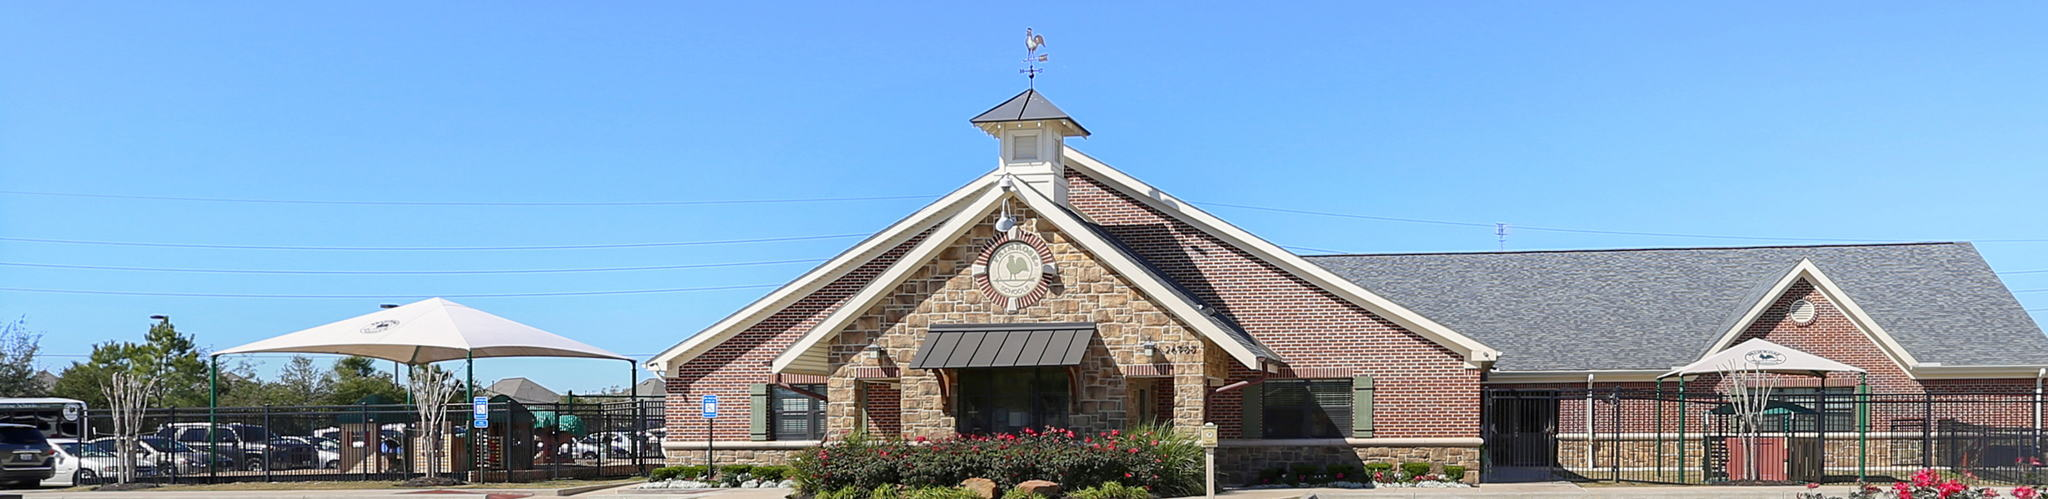 Exterior of a Primrose School of West Cinco Ranch